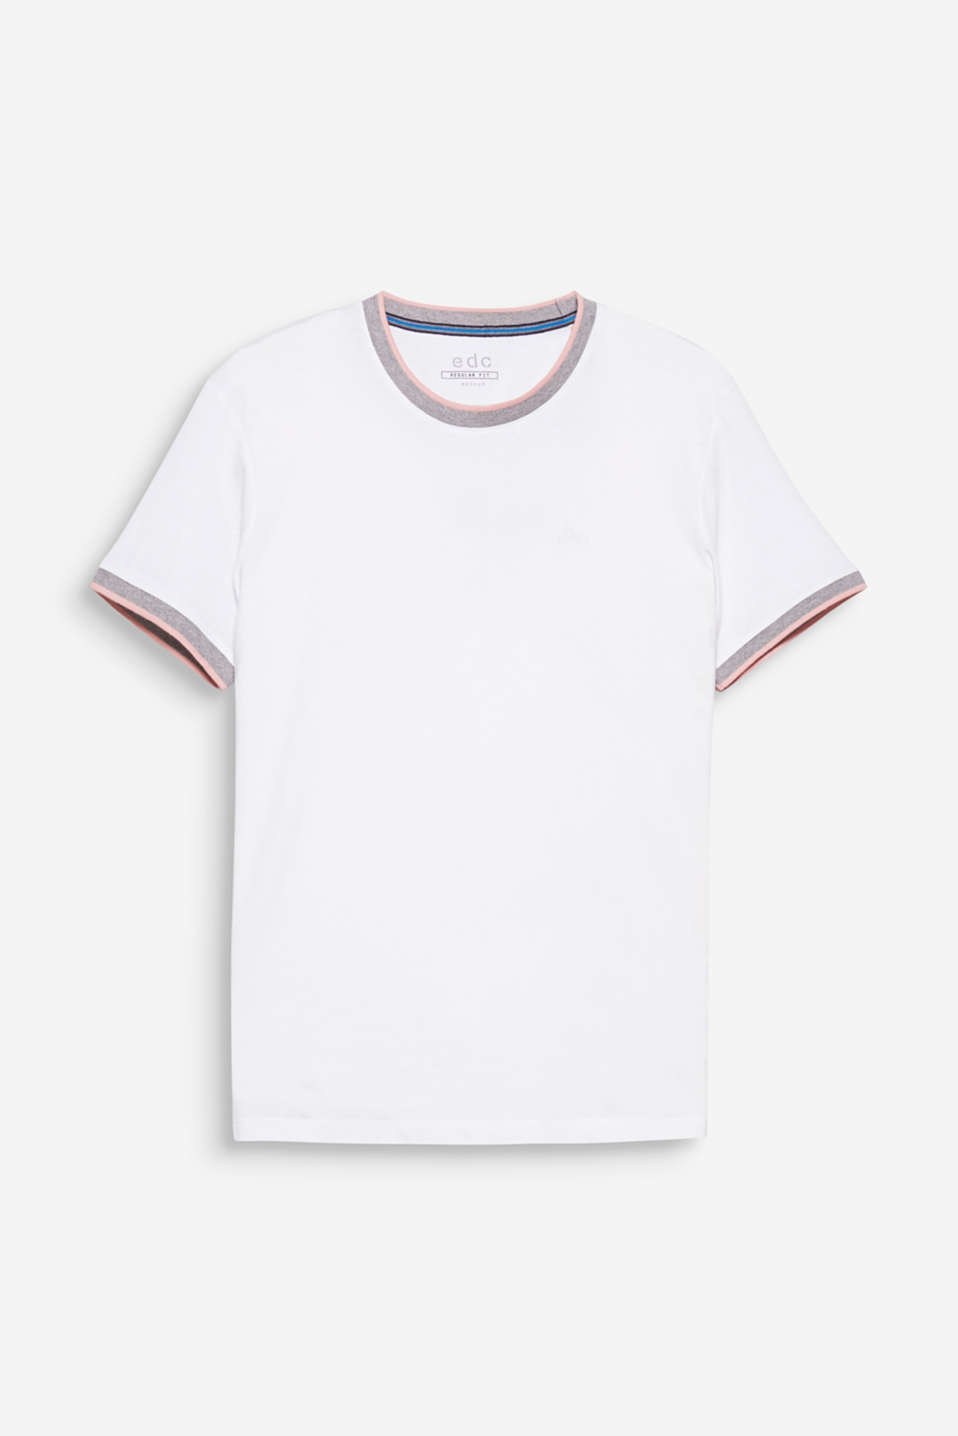 The ribbed round neckline with colourful stripes gives this T-shirt a sporty look.